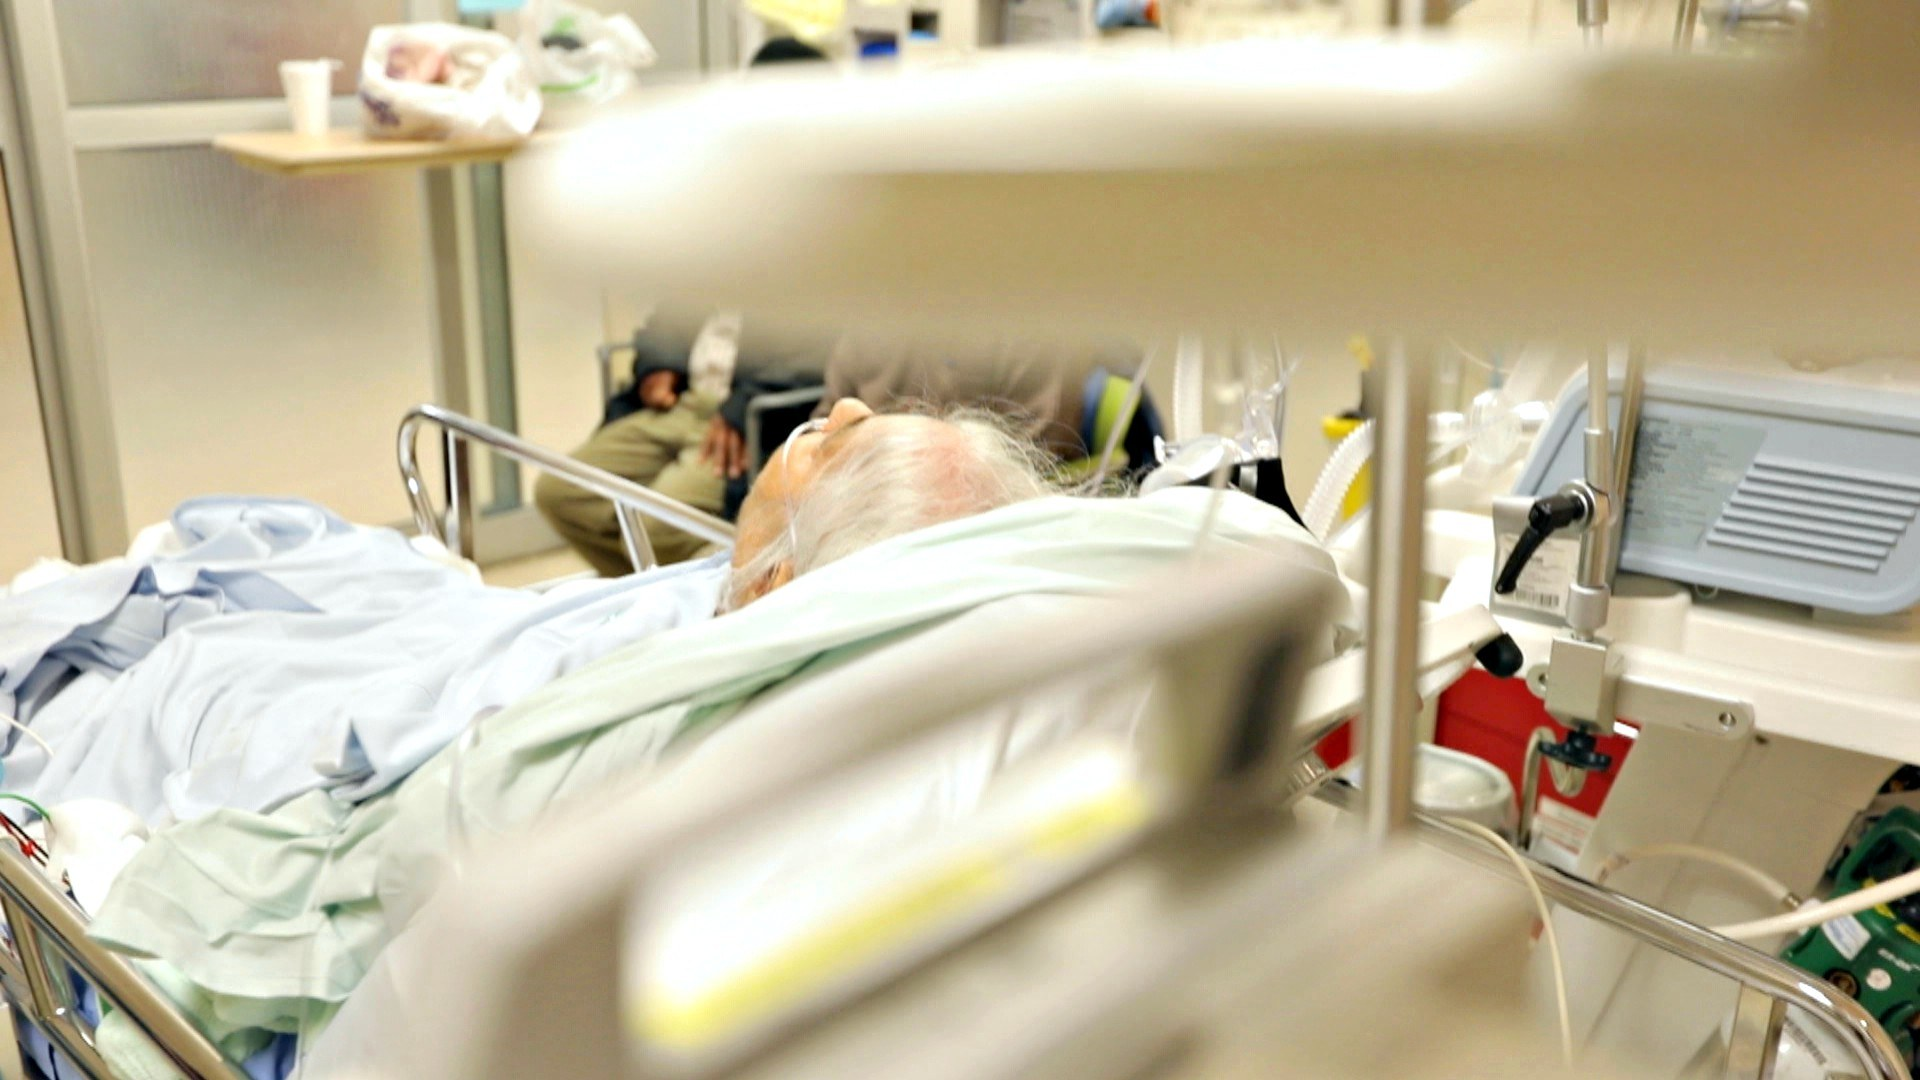 Surjit is 93, says her son, and had trouble breathing overnight. (Paul Borkwood/CBC News)